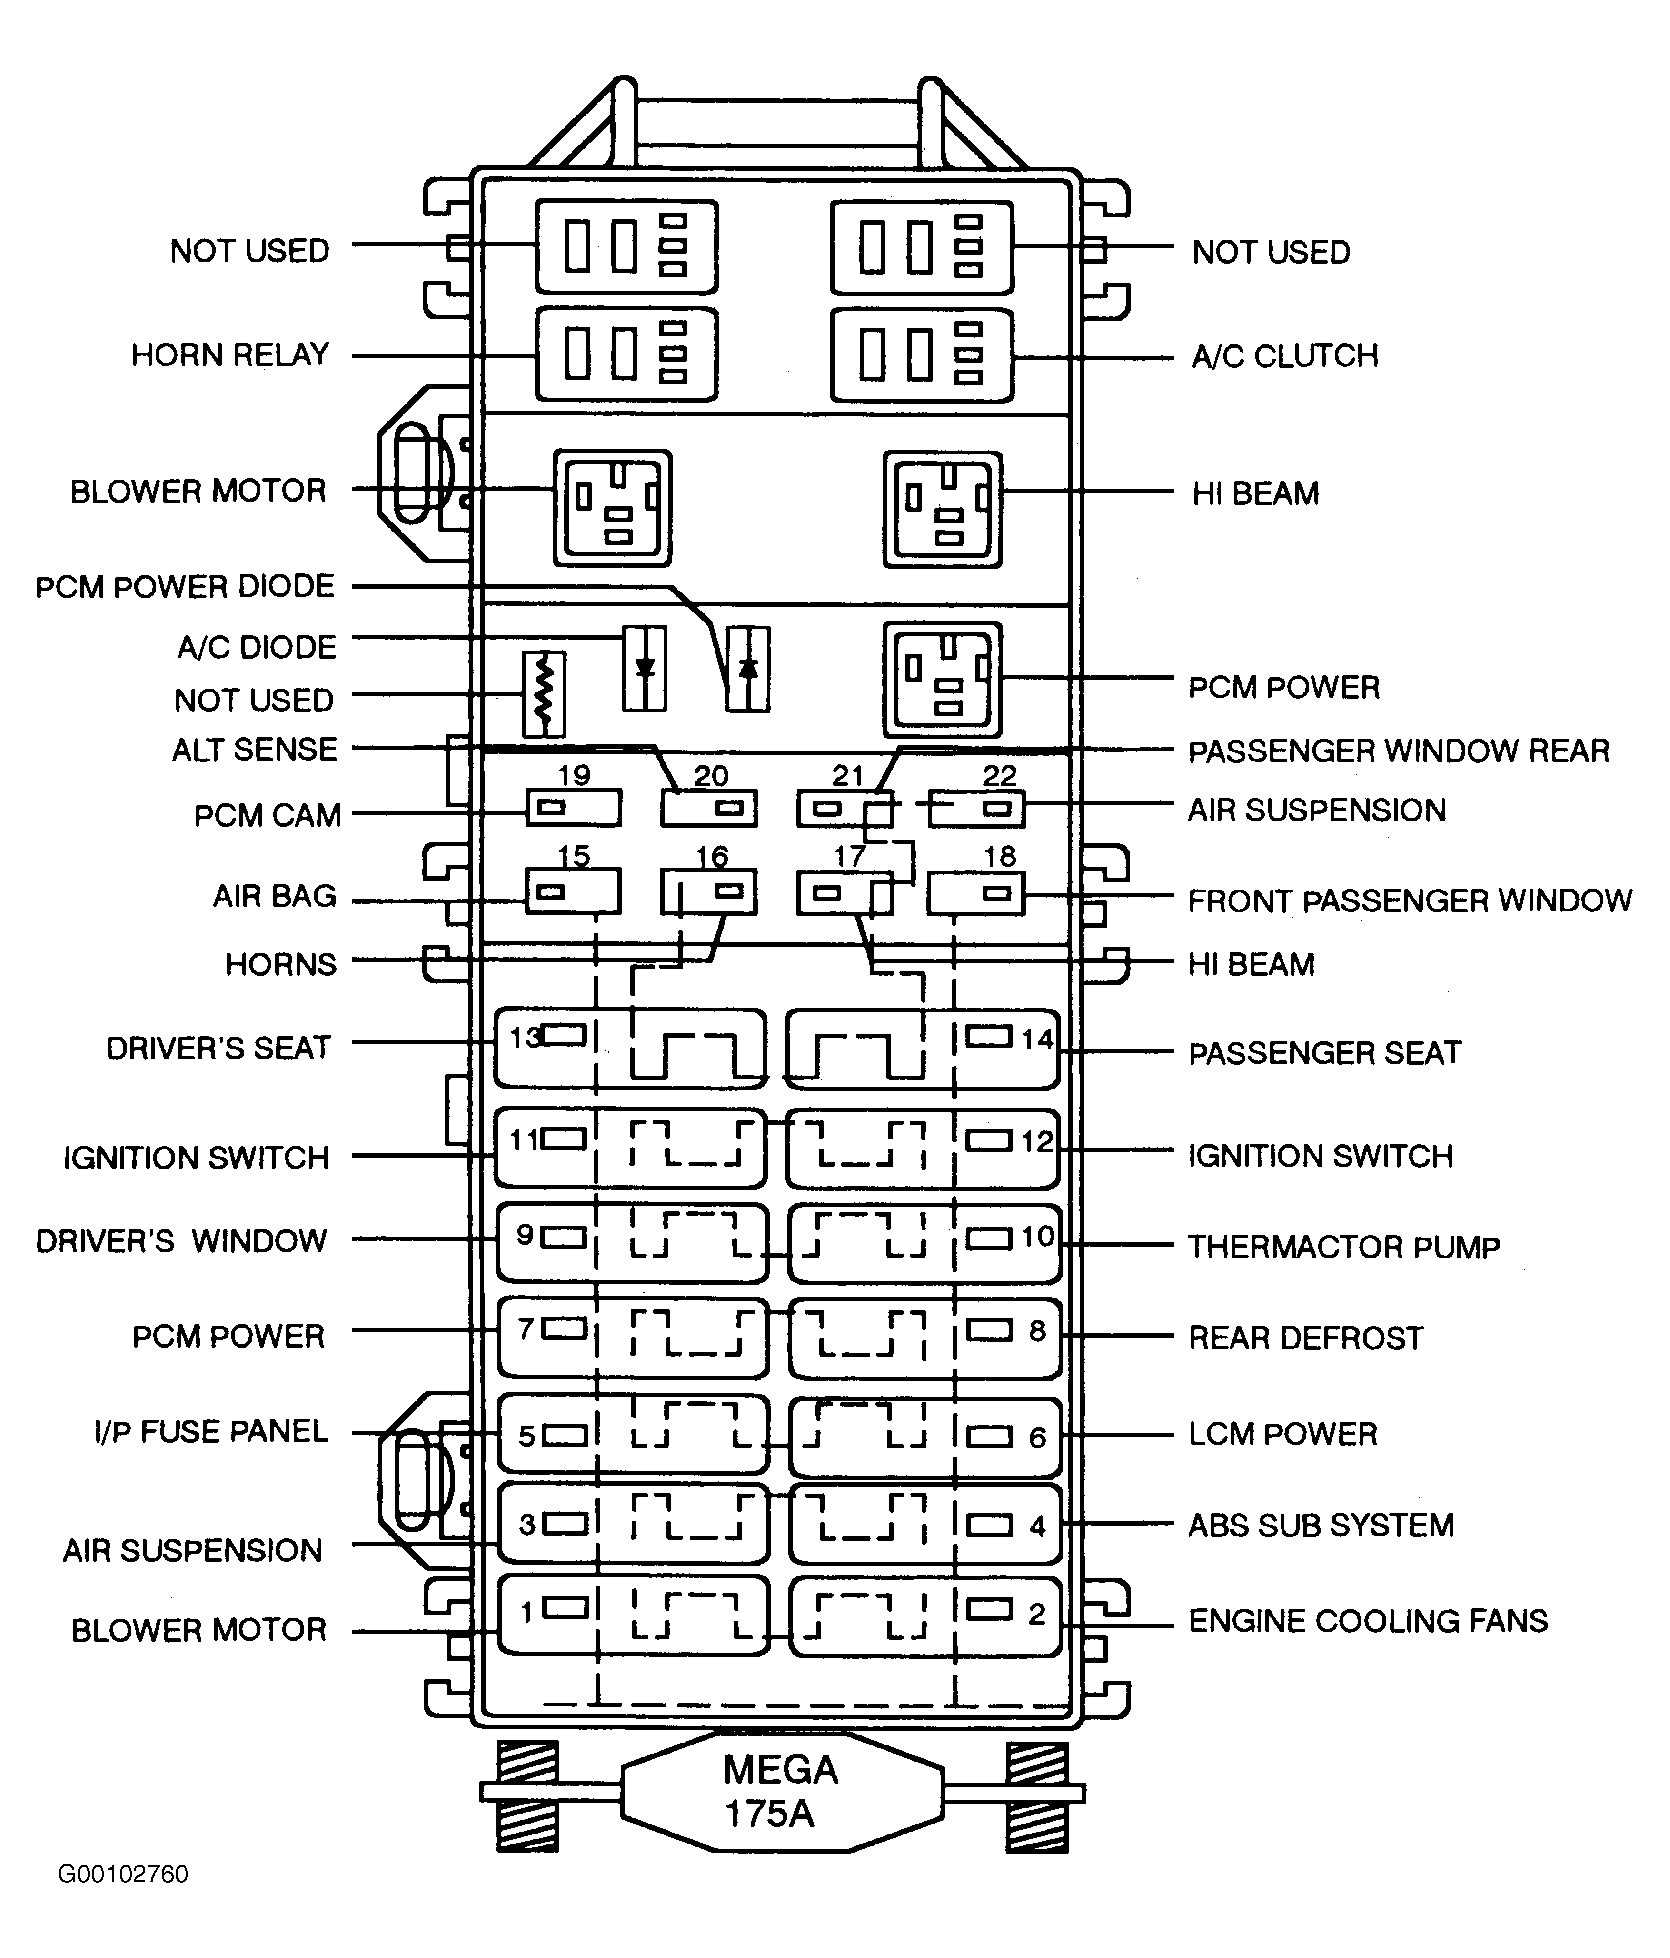 hight resolution of 1996 mack fuse box diagram wiring library1996 mack fuse box diagram